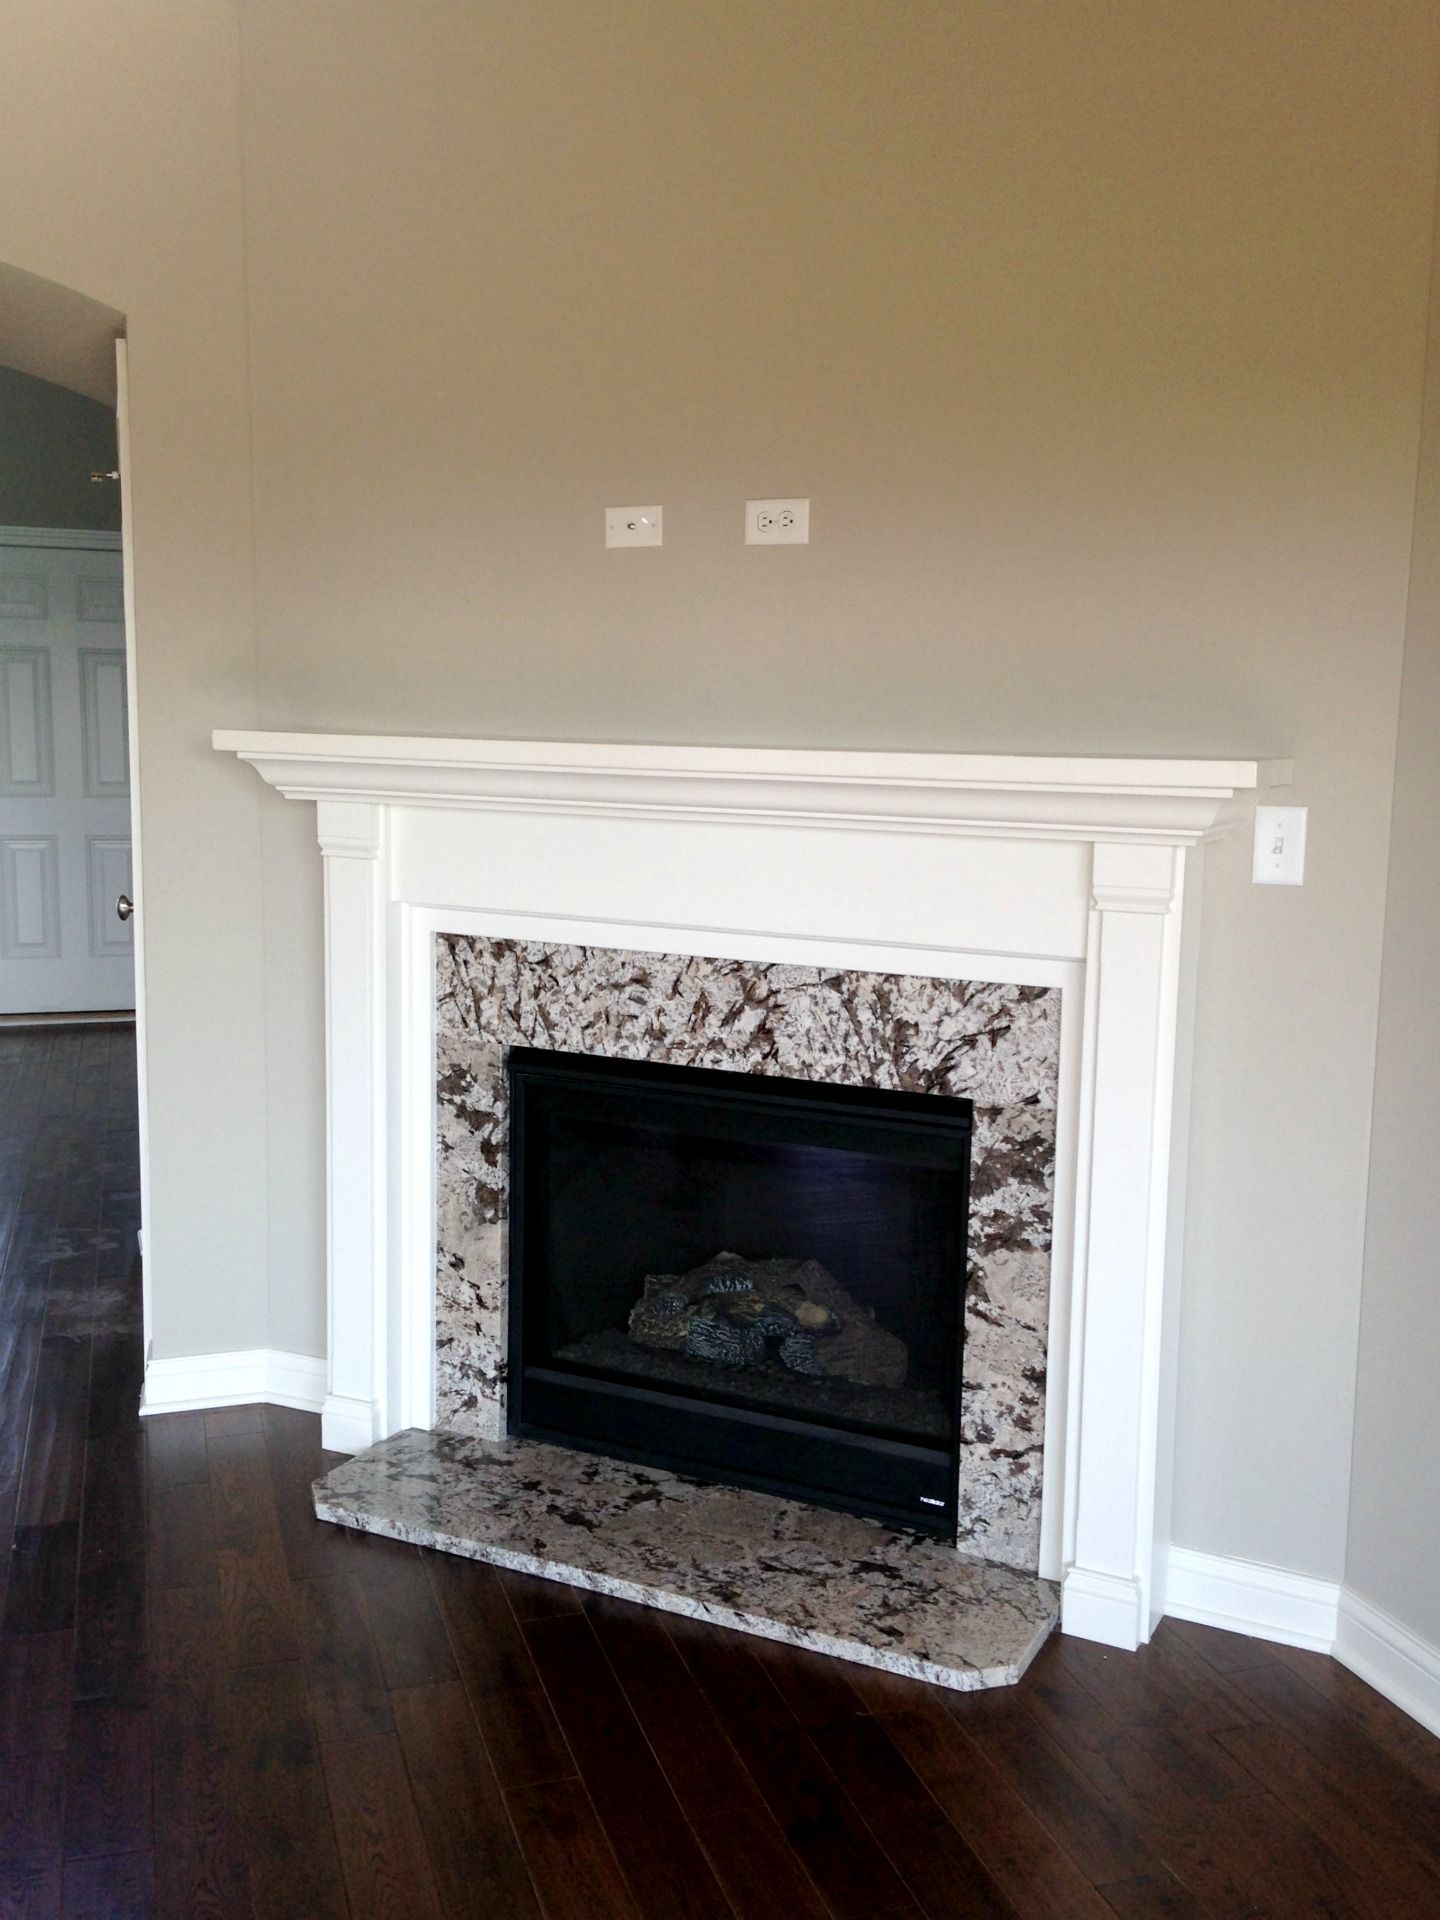 veneer boarded walls gas applied mantle the a were fireplace installing mantel plaster and with that opened